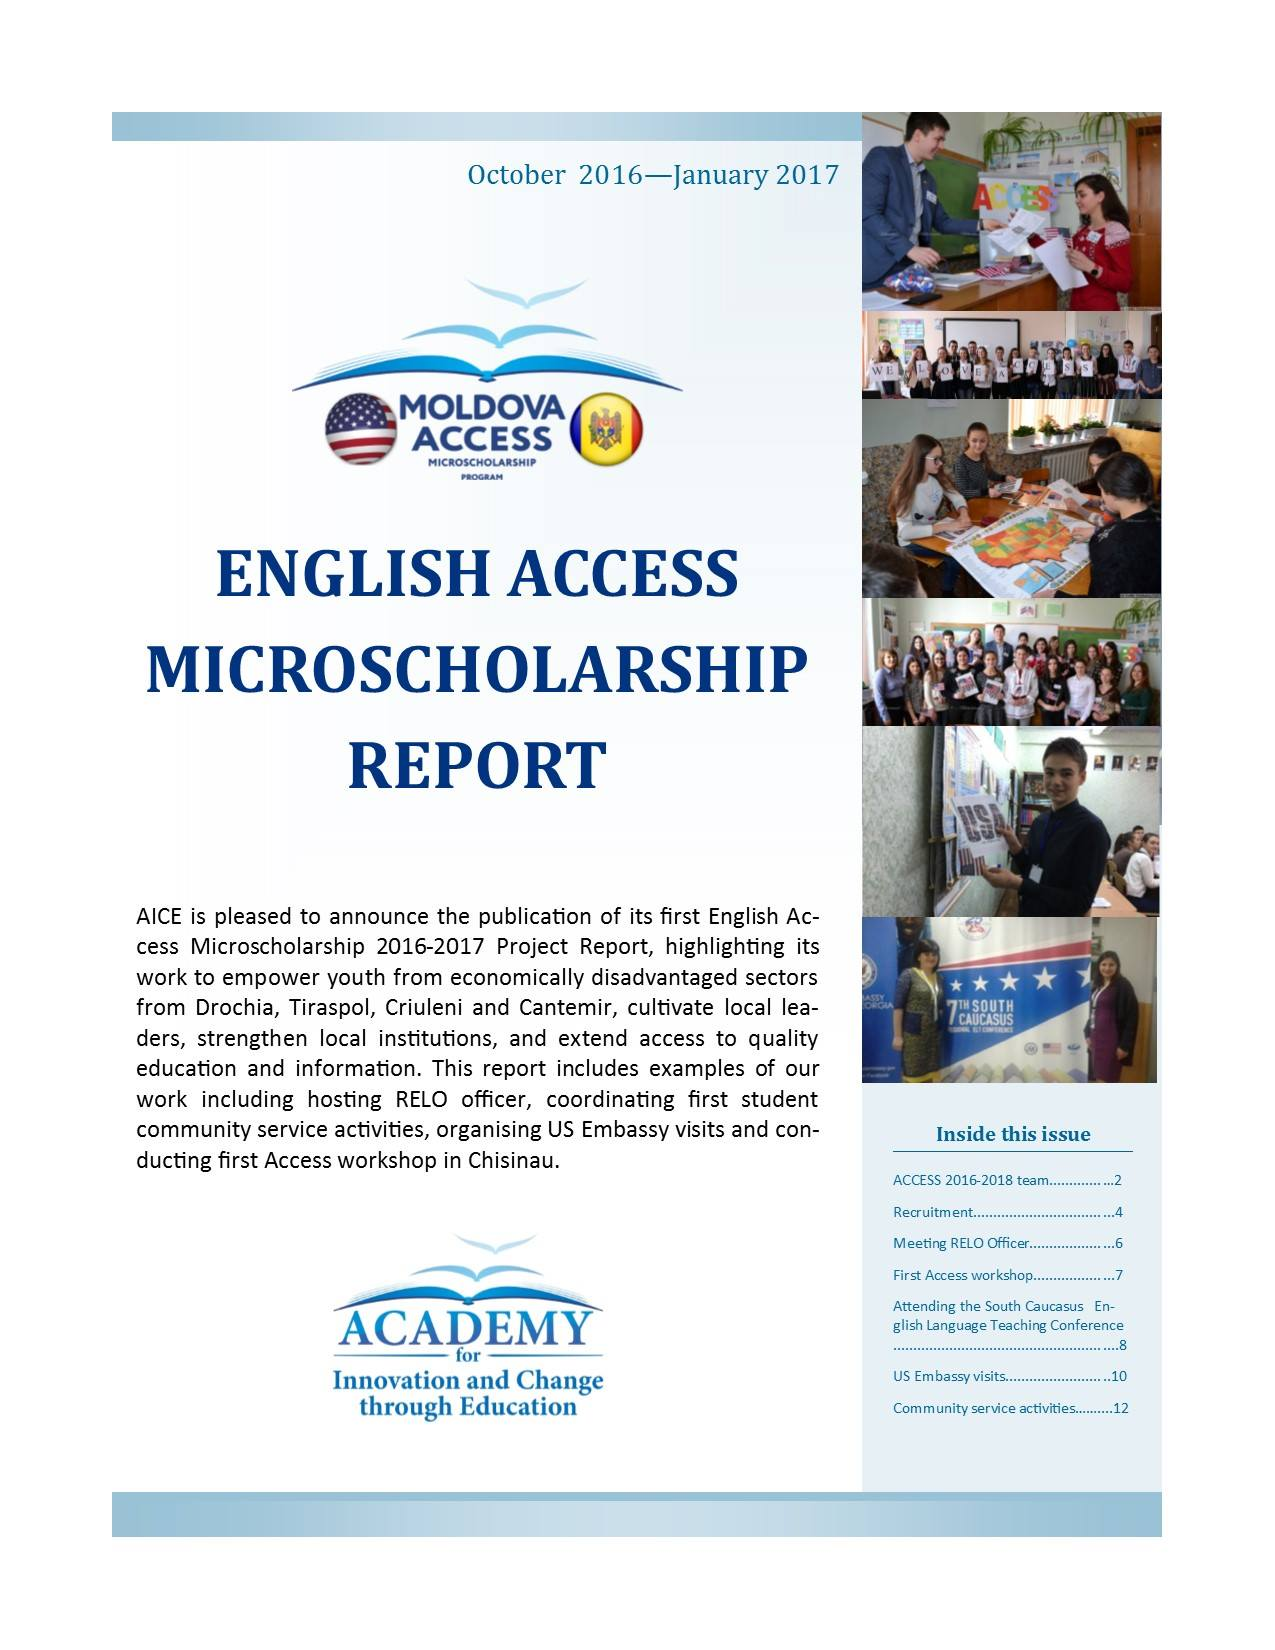 English Access Microscholarship